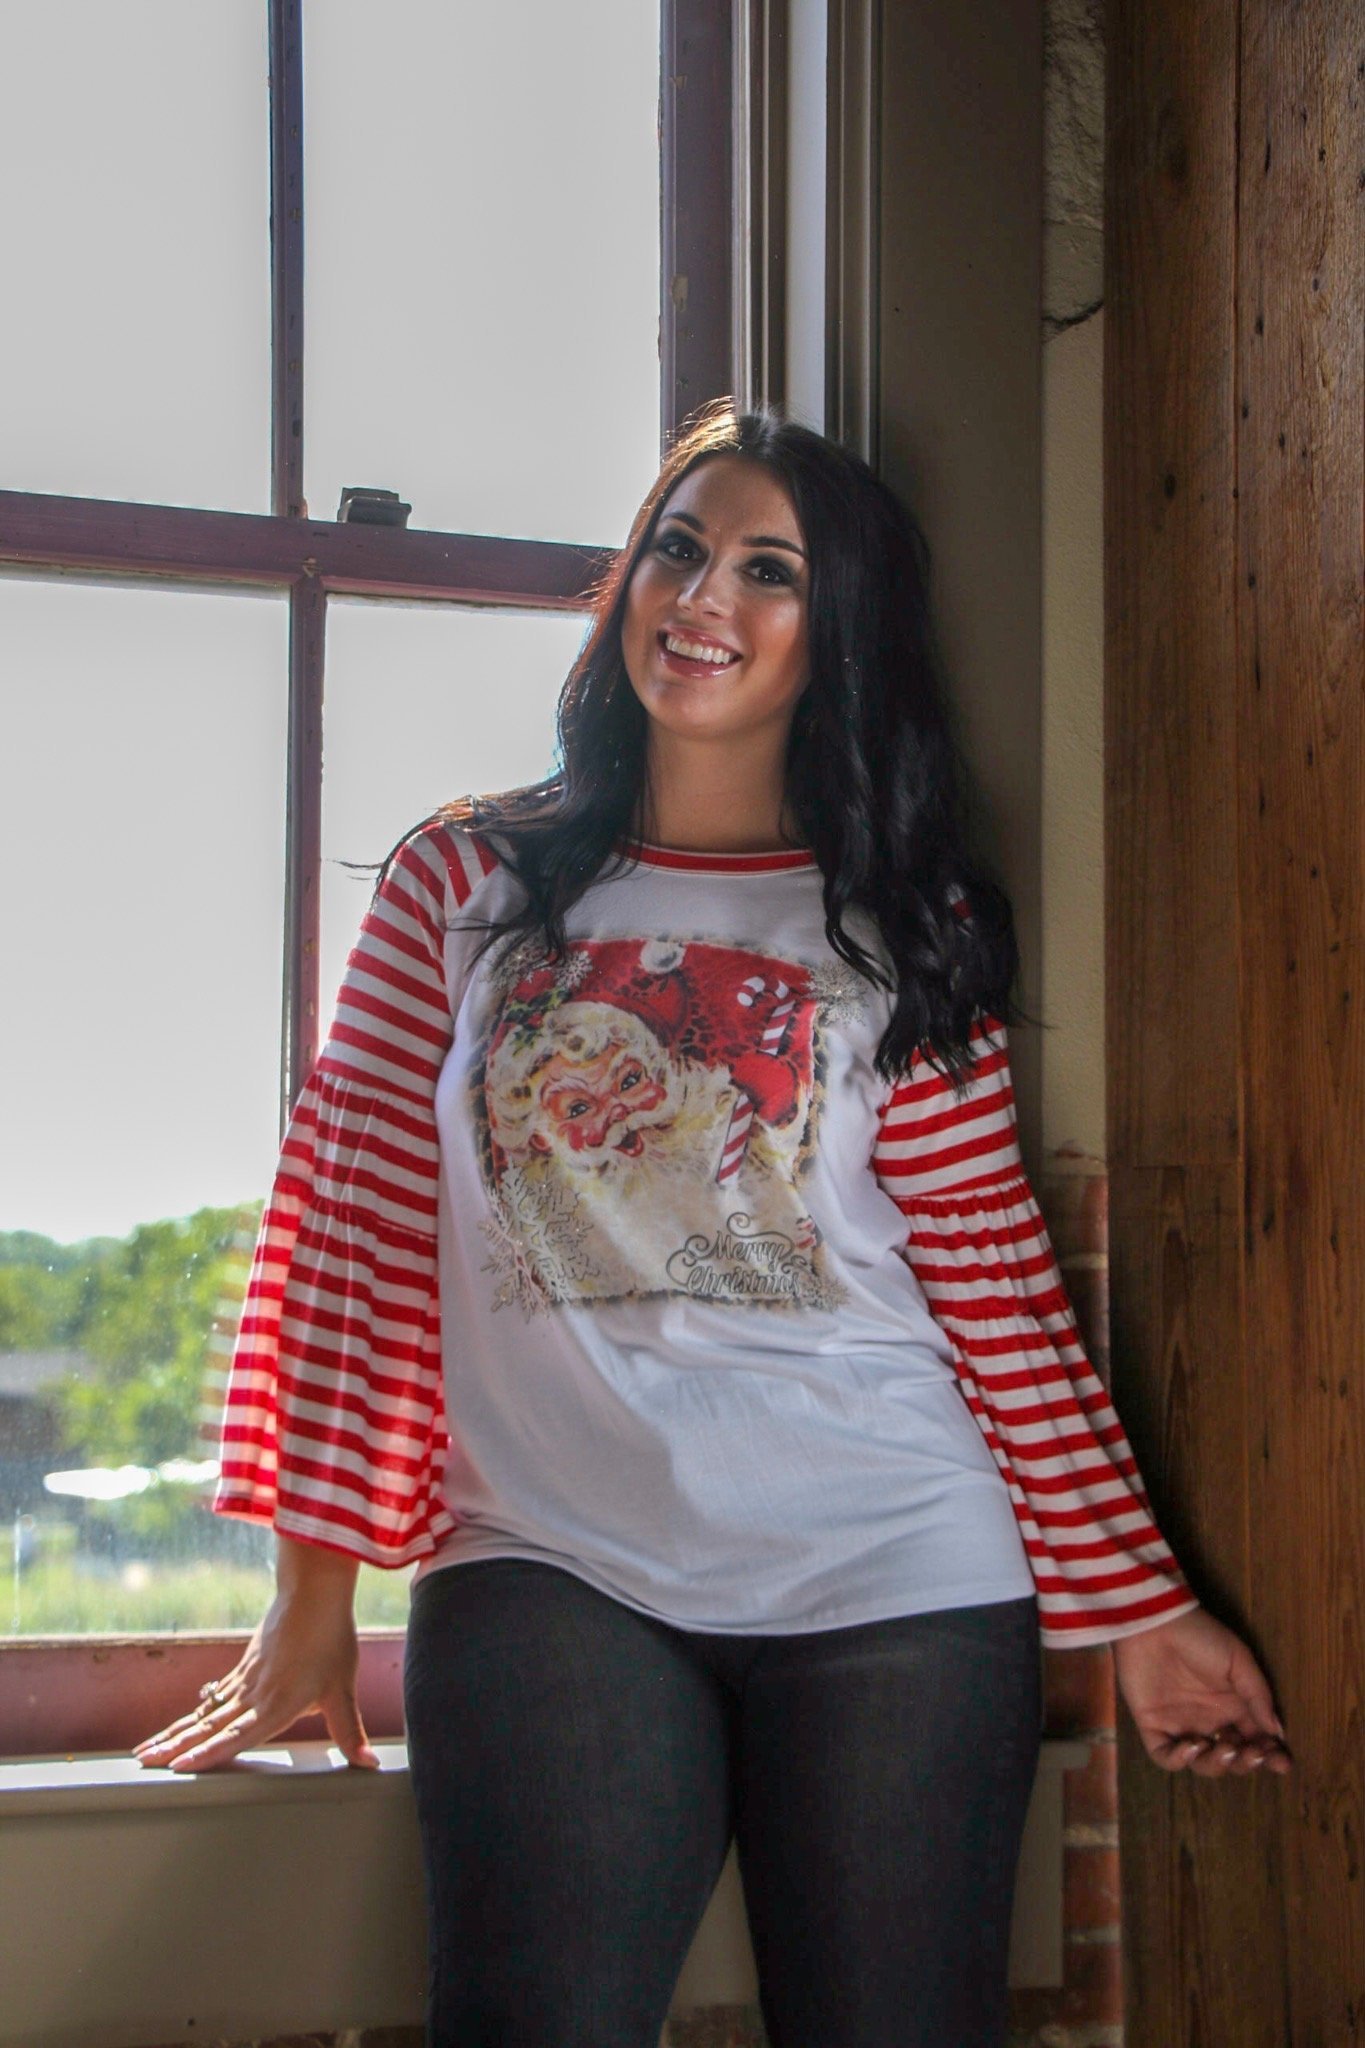 Candy Cane Santa on Red/White Striped Bell Sleeve Tee